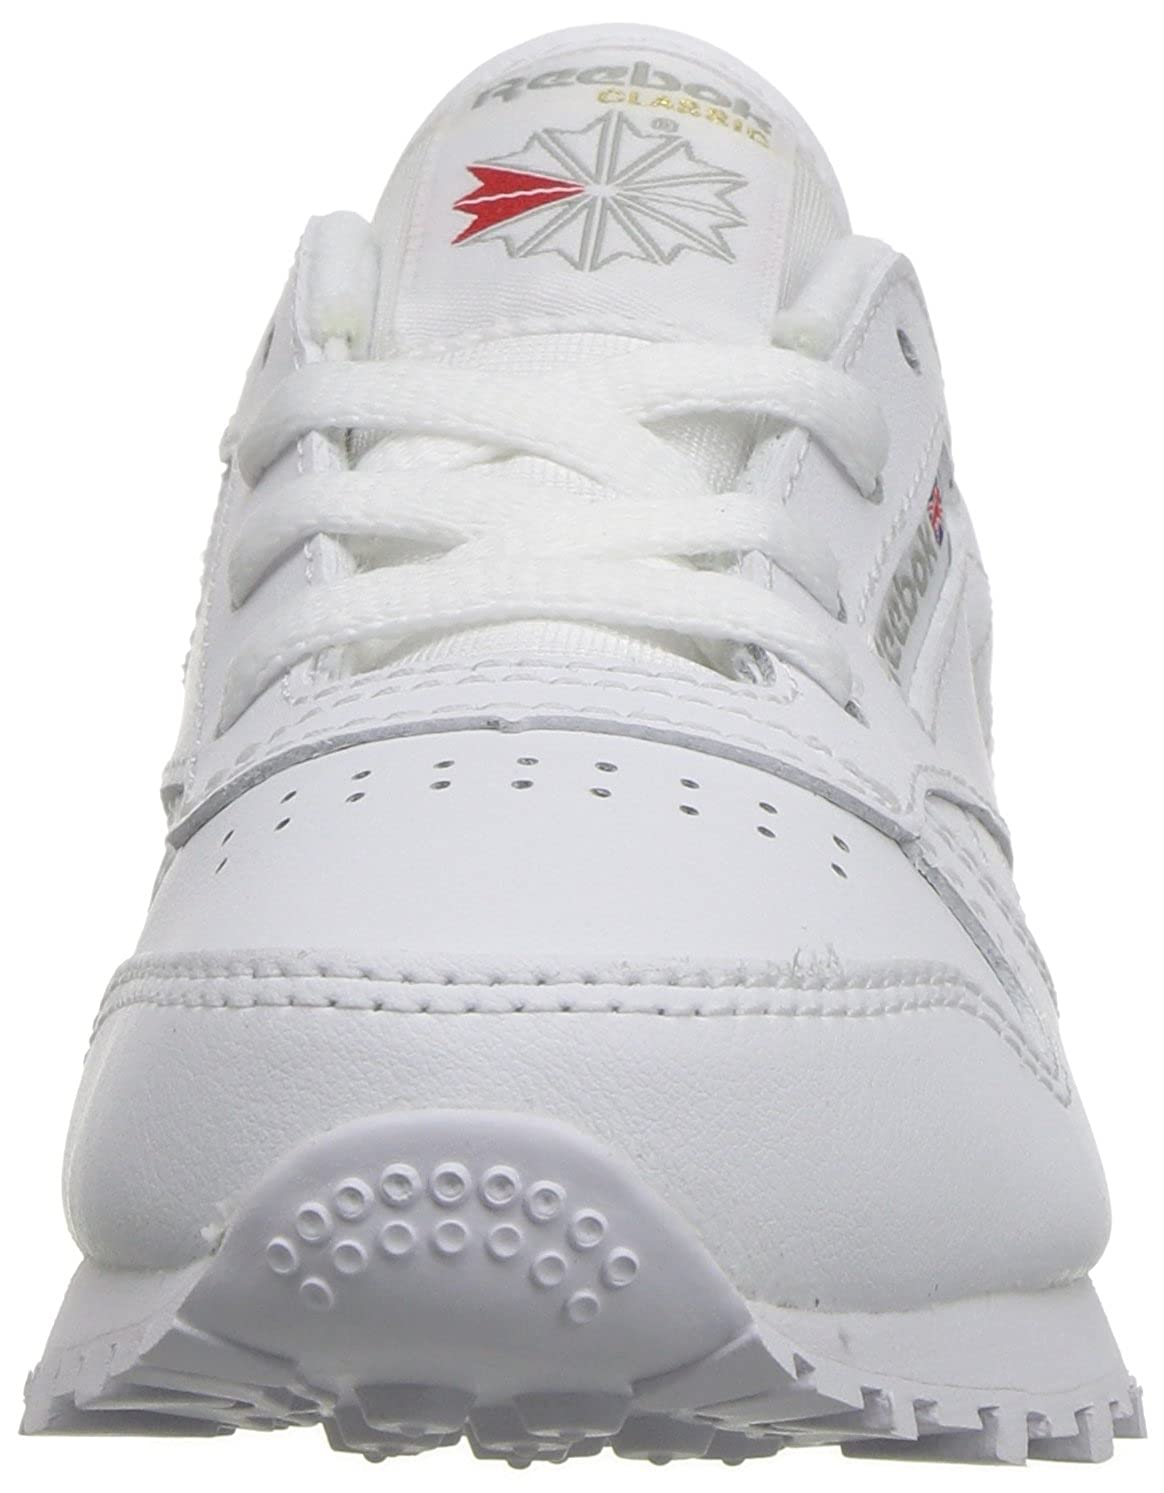 84939316f52 Reebok Infant  Toddler Classic Leather Sneaker 81-92757 Top ...